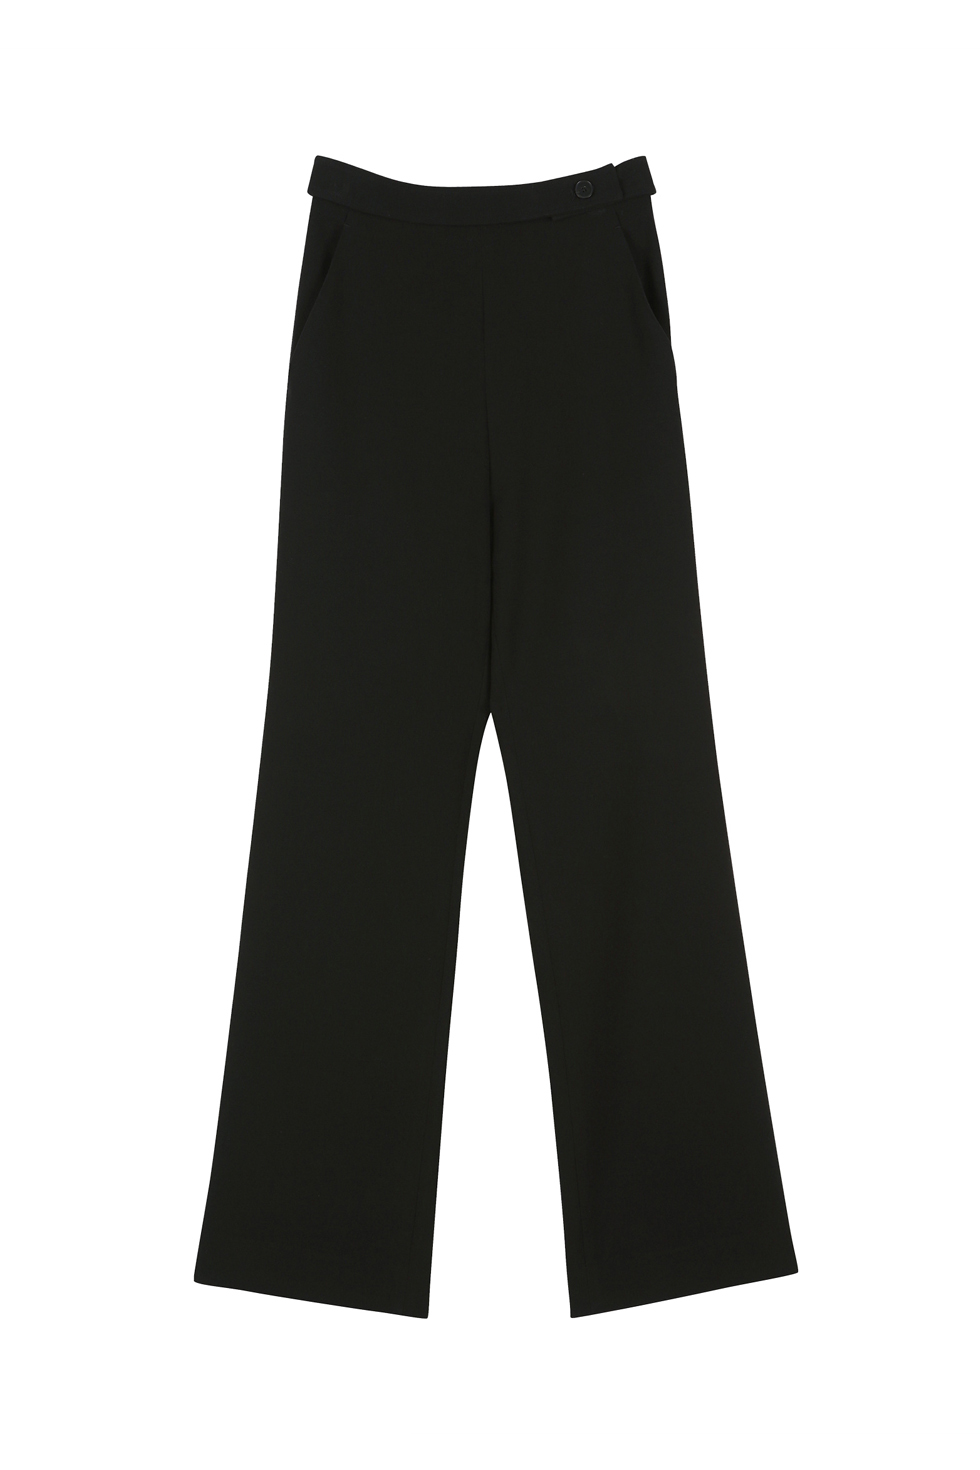 BELTED STRAIGHT PANTS - BLACK